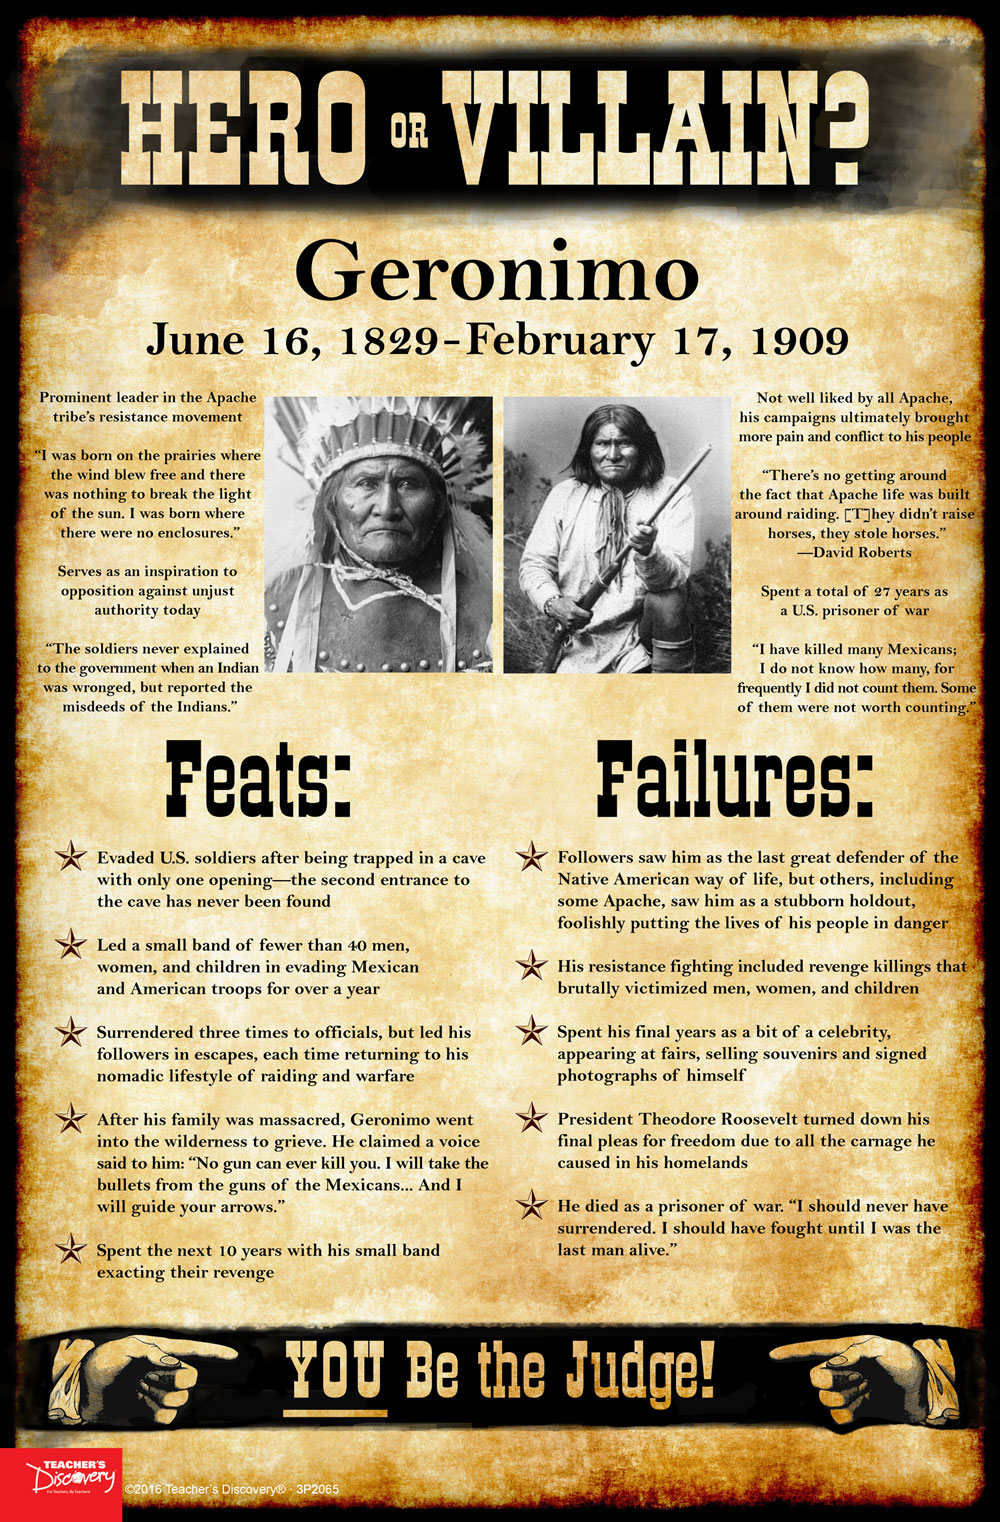 Geronimo: Hero or Villain? Mini-Poster